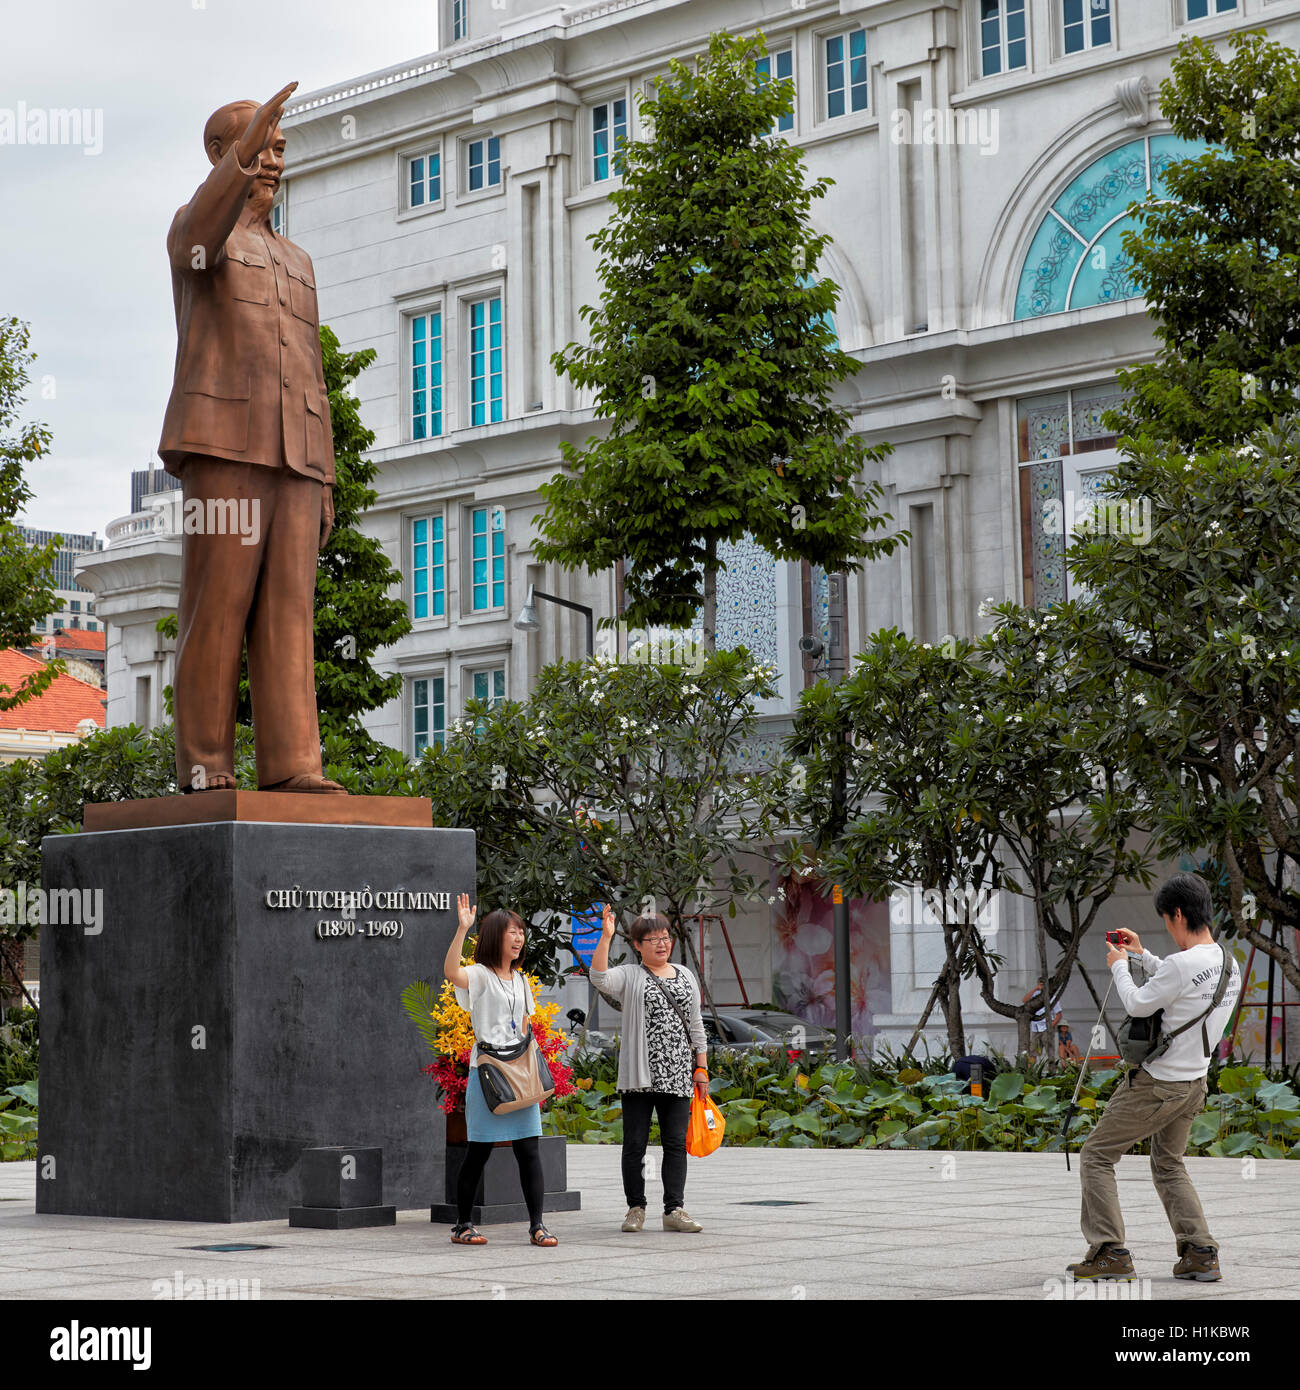 Tourists take photo in front of Ho Chi Minh Statue. Ho Chi Minh City, Vietnam. - Stock Image